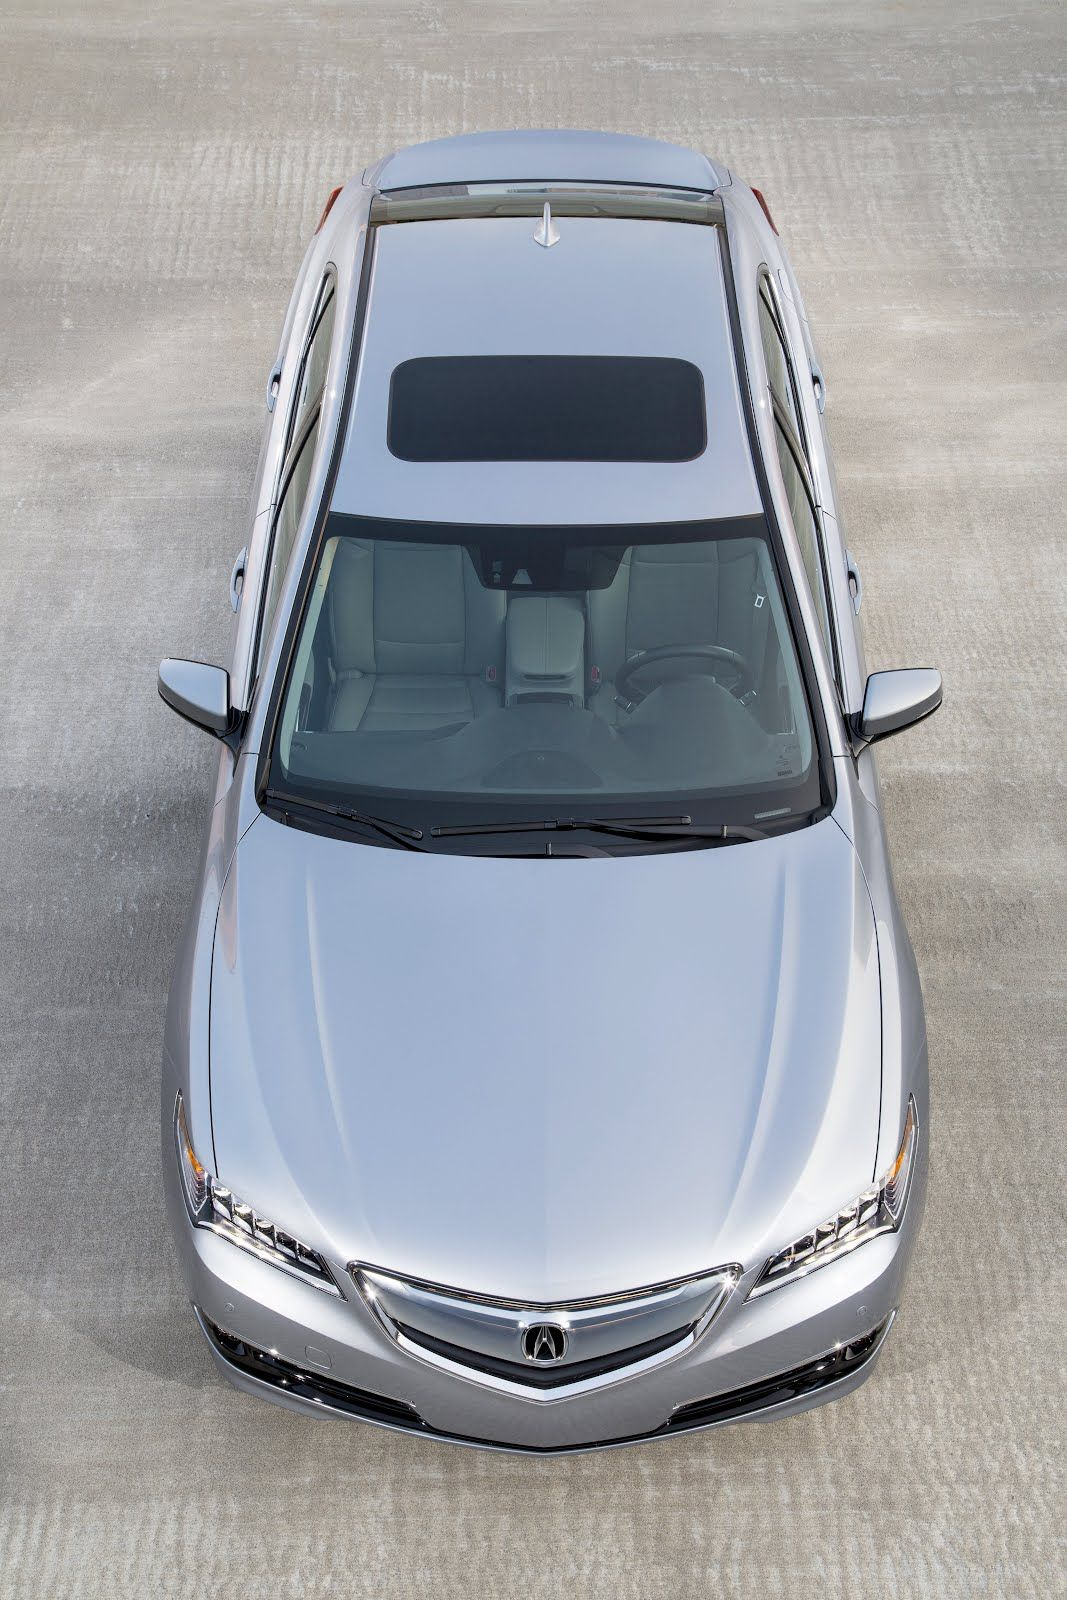 2016 Acura Tlx Dimensions And Capacities Luther Bloomington Acura